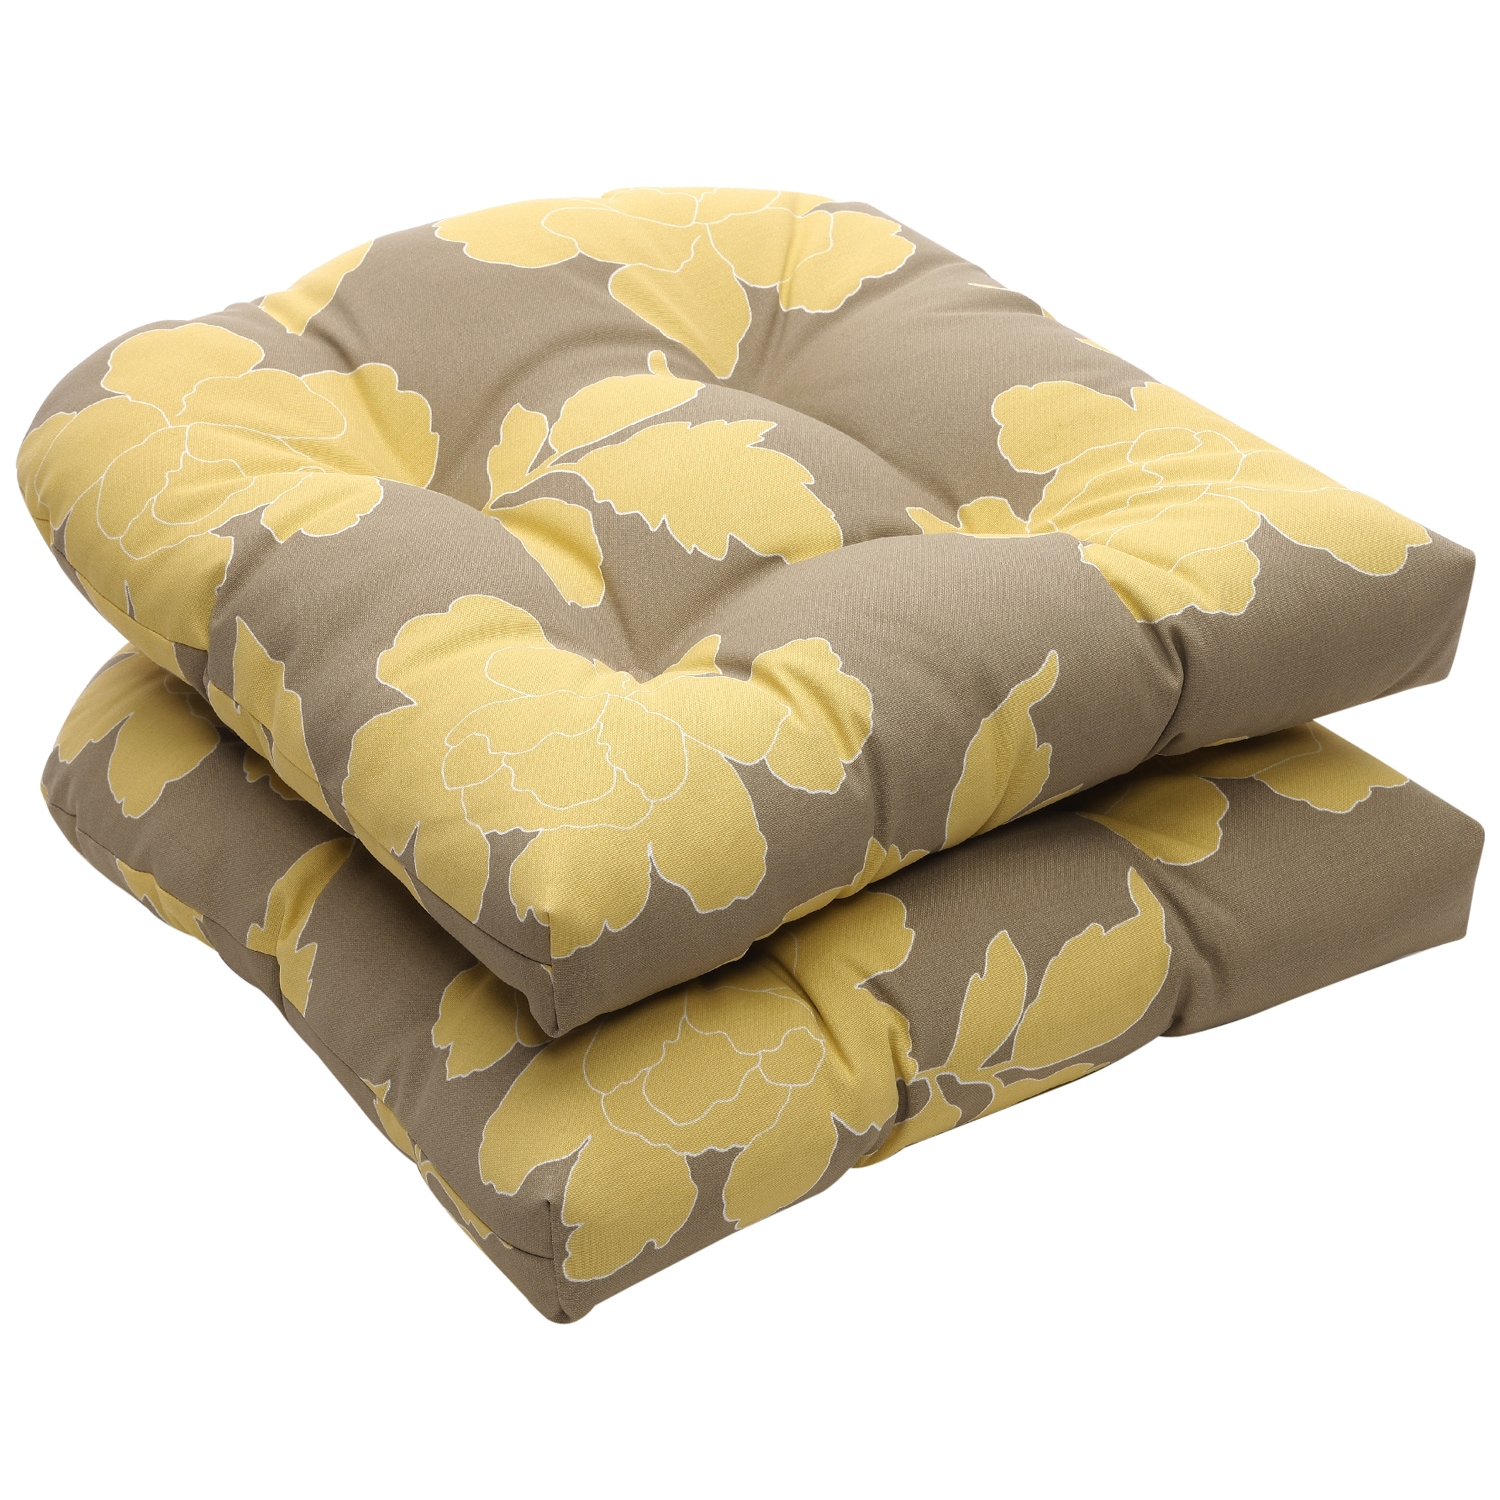 Outdoor Gray and Yellow Floral Wicker Seat Cushions Set